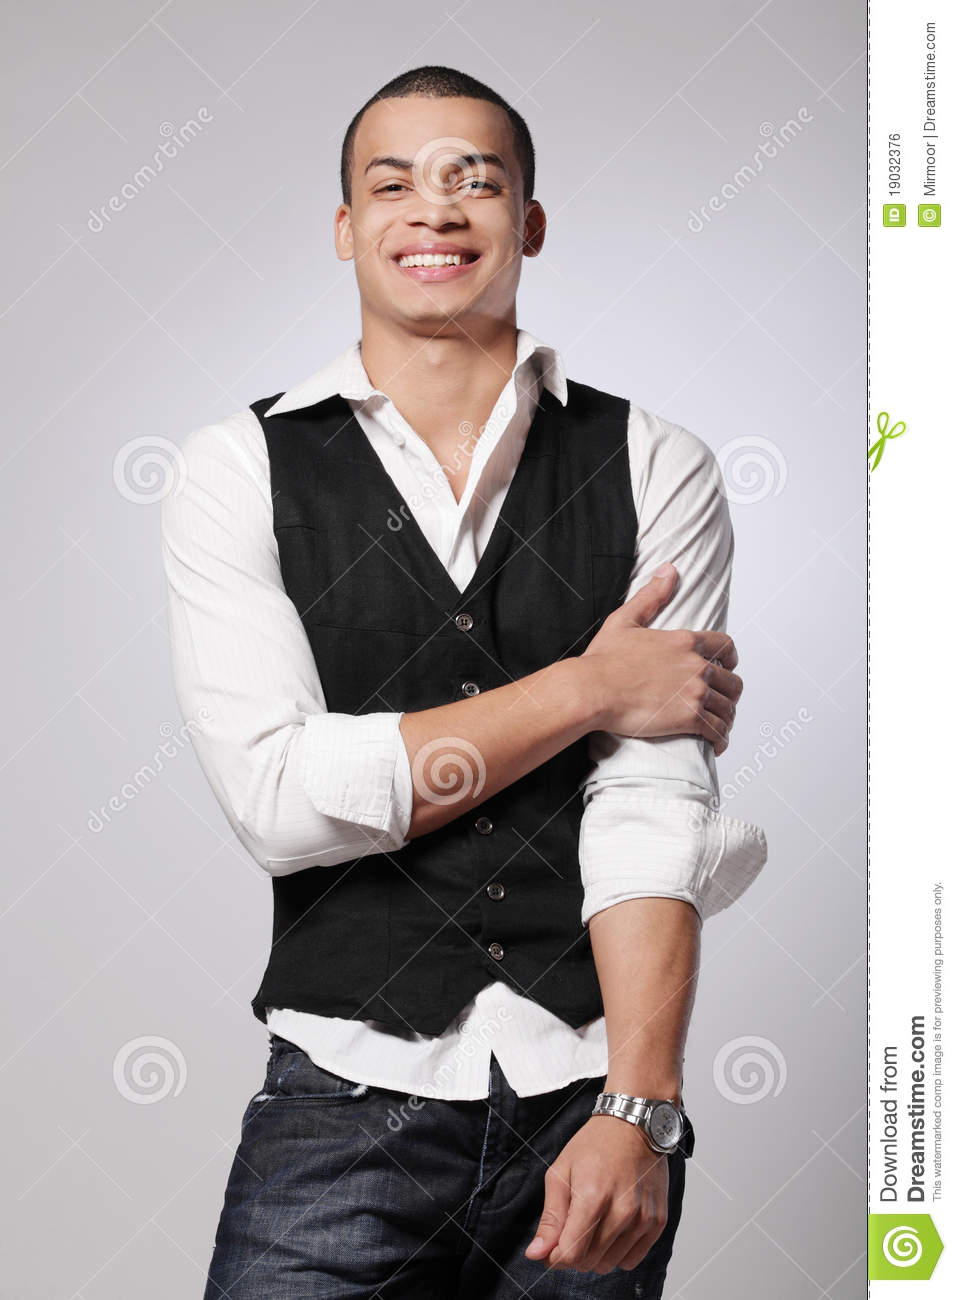 Young Fashion Male Model On Gray Background Royalty Free Stock Image Image 19032376